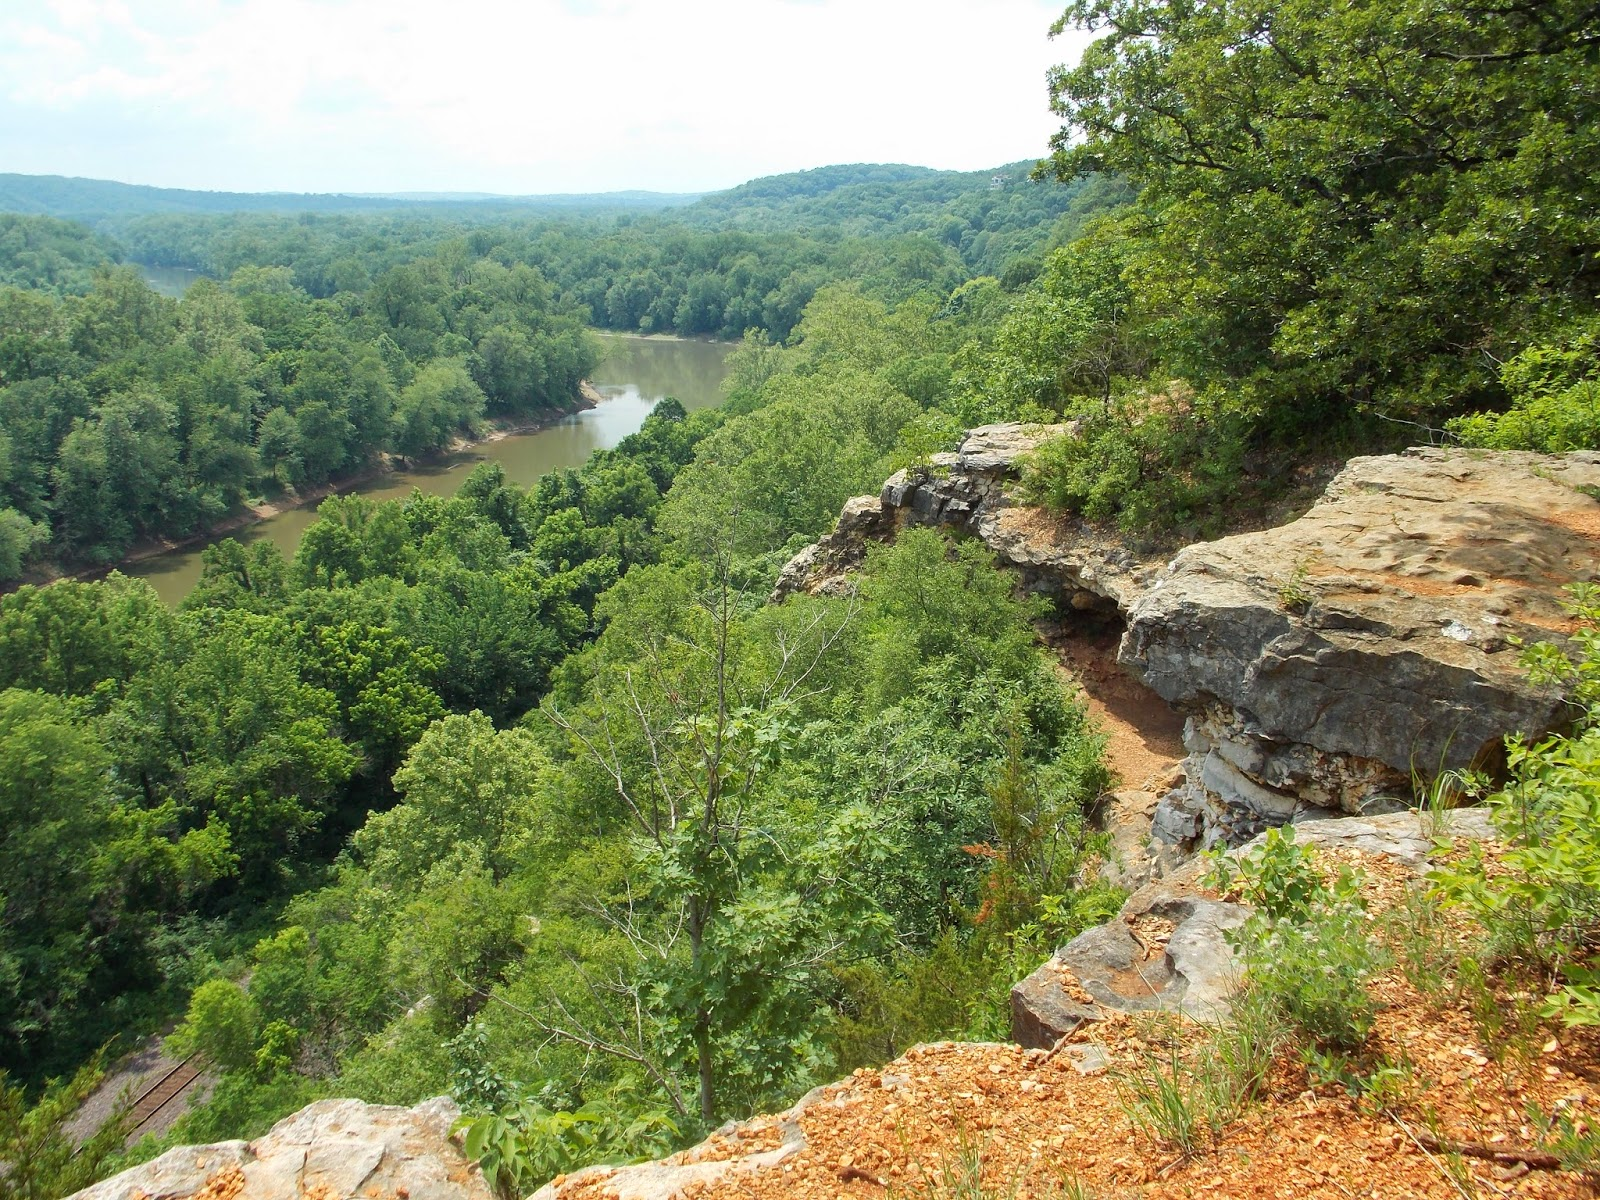 castlewood state park Find reviews, tips & activities for castlewood state park in the early 1900s, the area that's now castlewood state park was a popular retreat for partying st louisans.